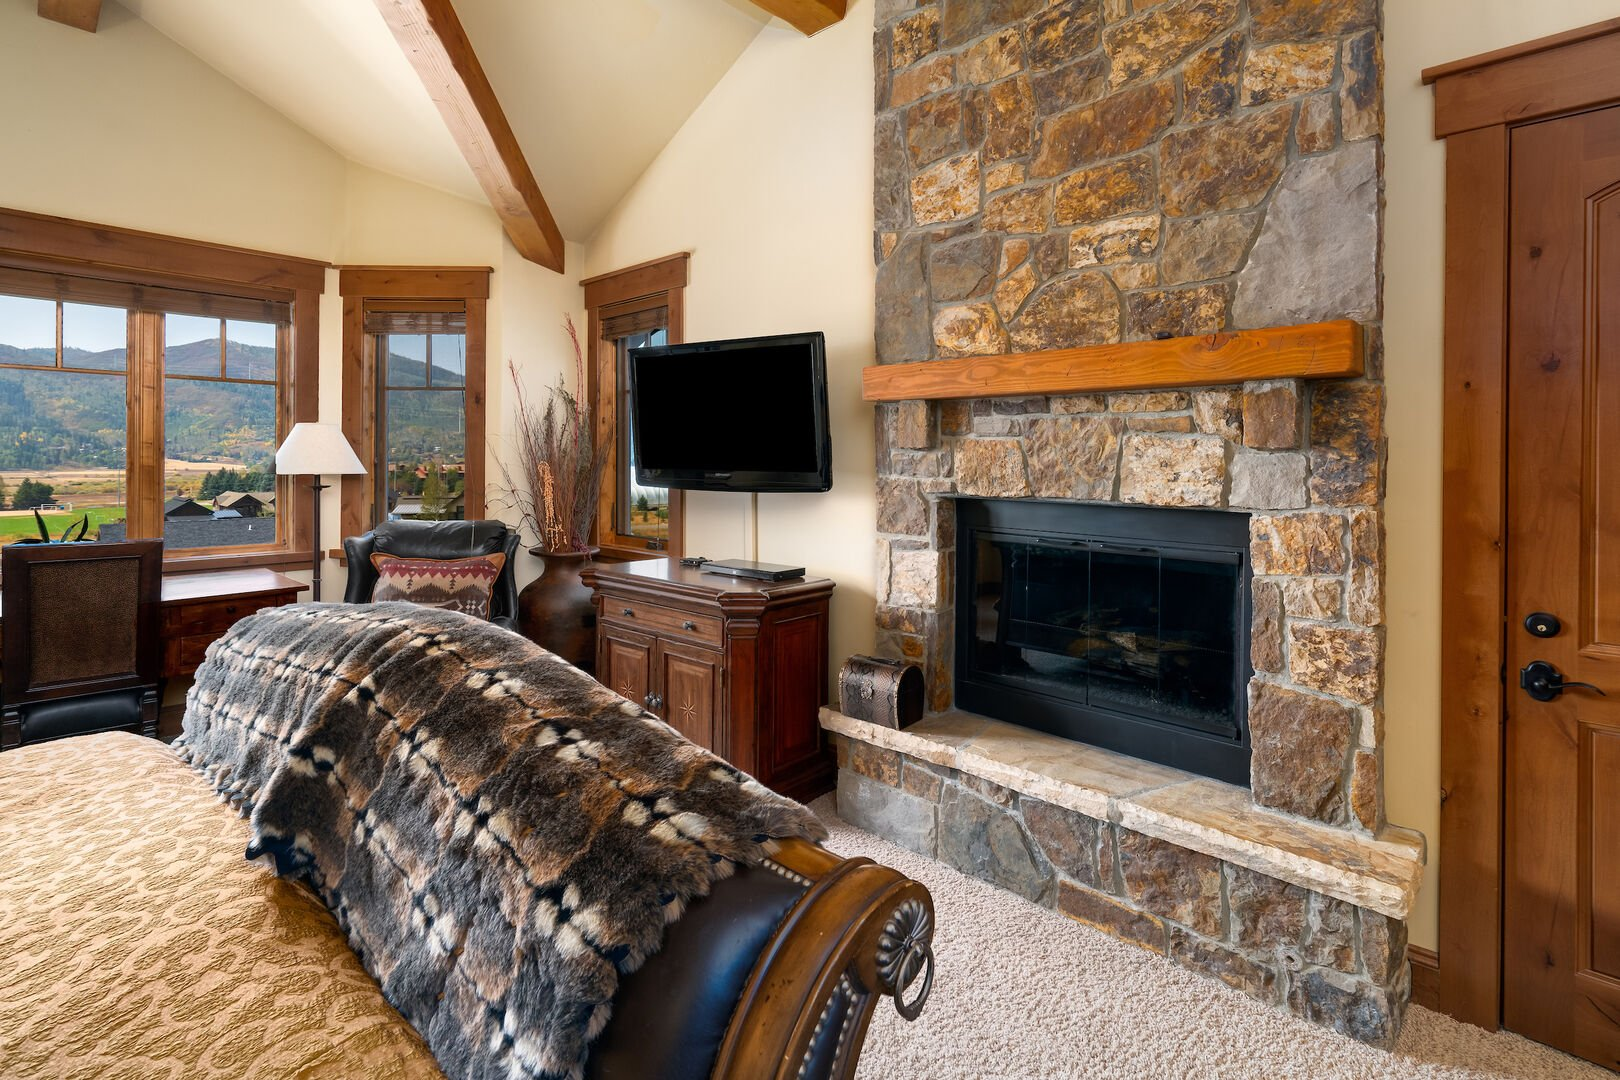 Master bedroom gas fireplace and TV